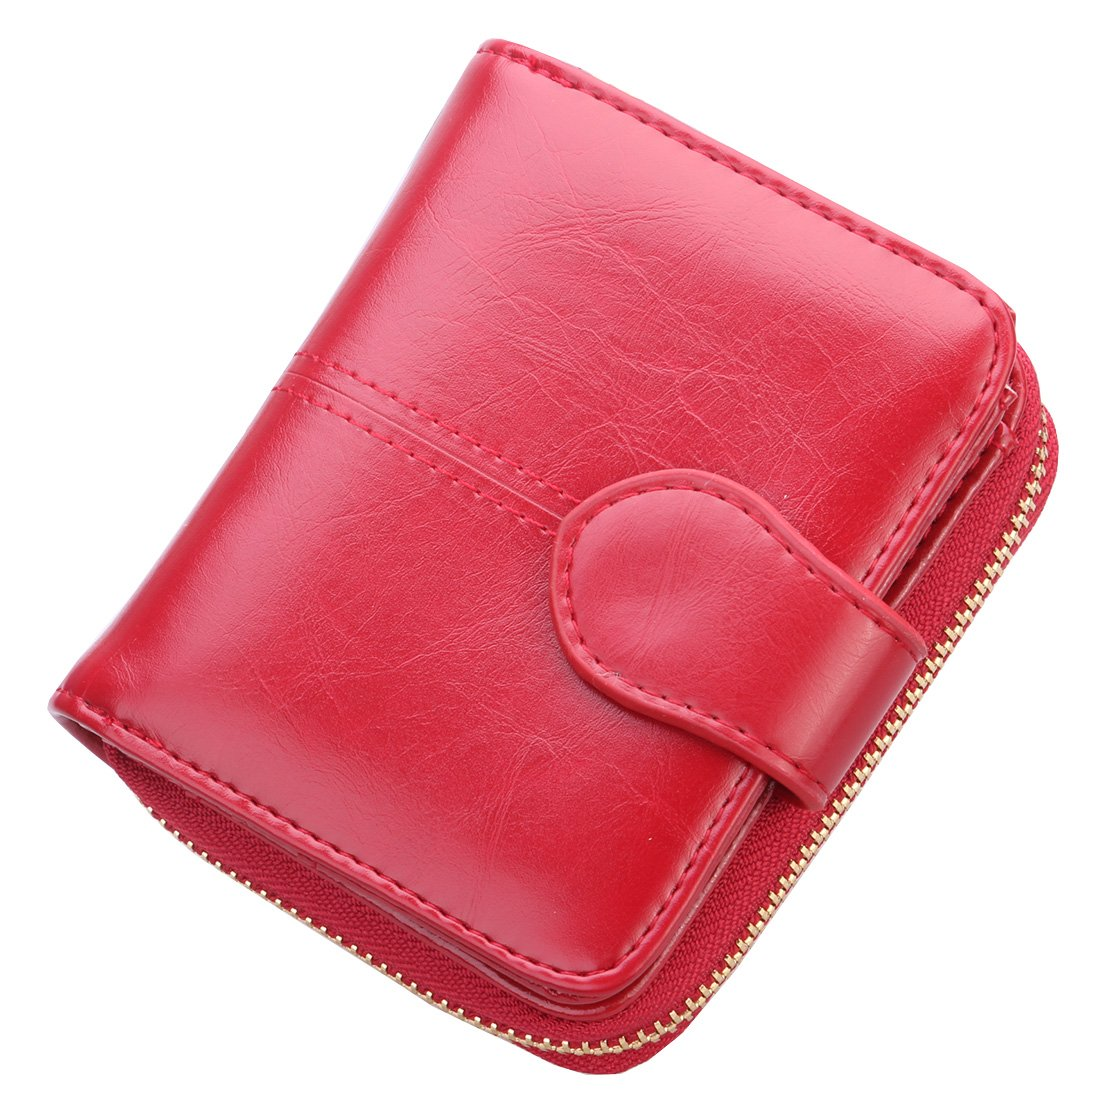 UPinYi Leather Wallet for Women Short Clutch Purse Bifold Ladies Multi Card Holder Coin Zippered Organizer (Wine Red)